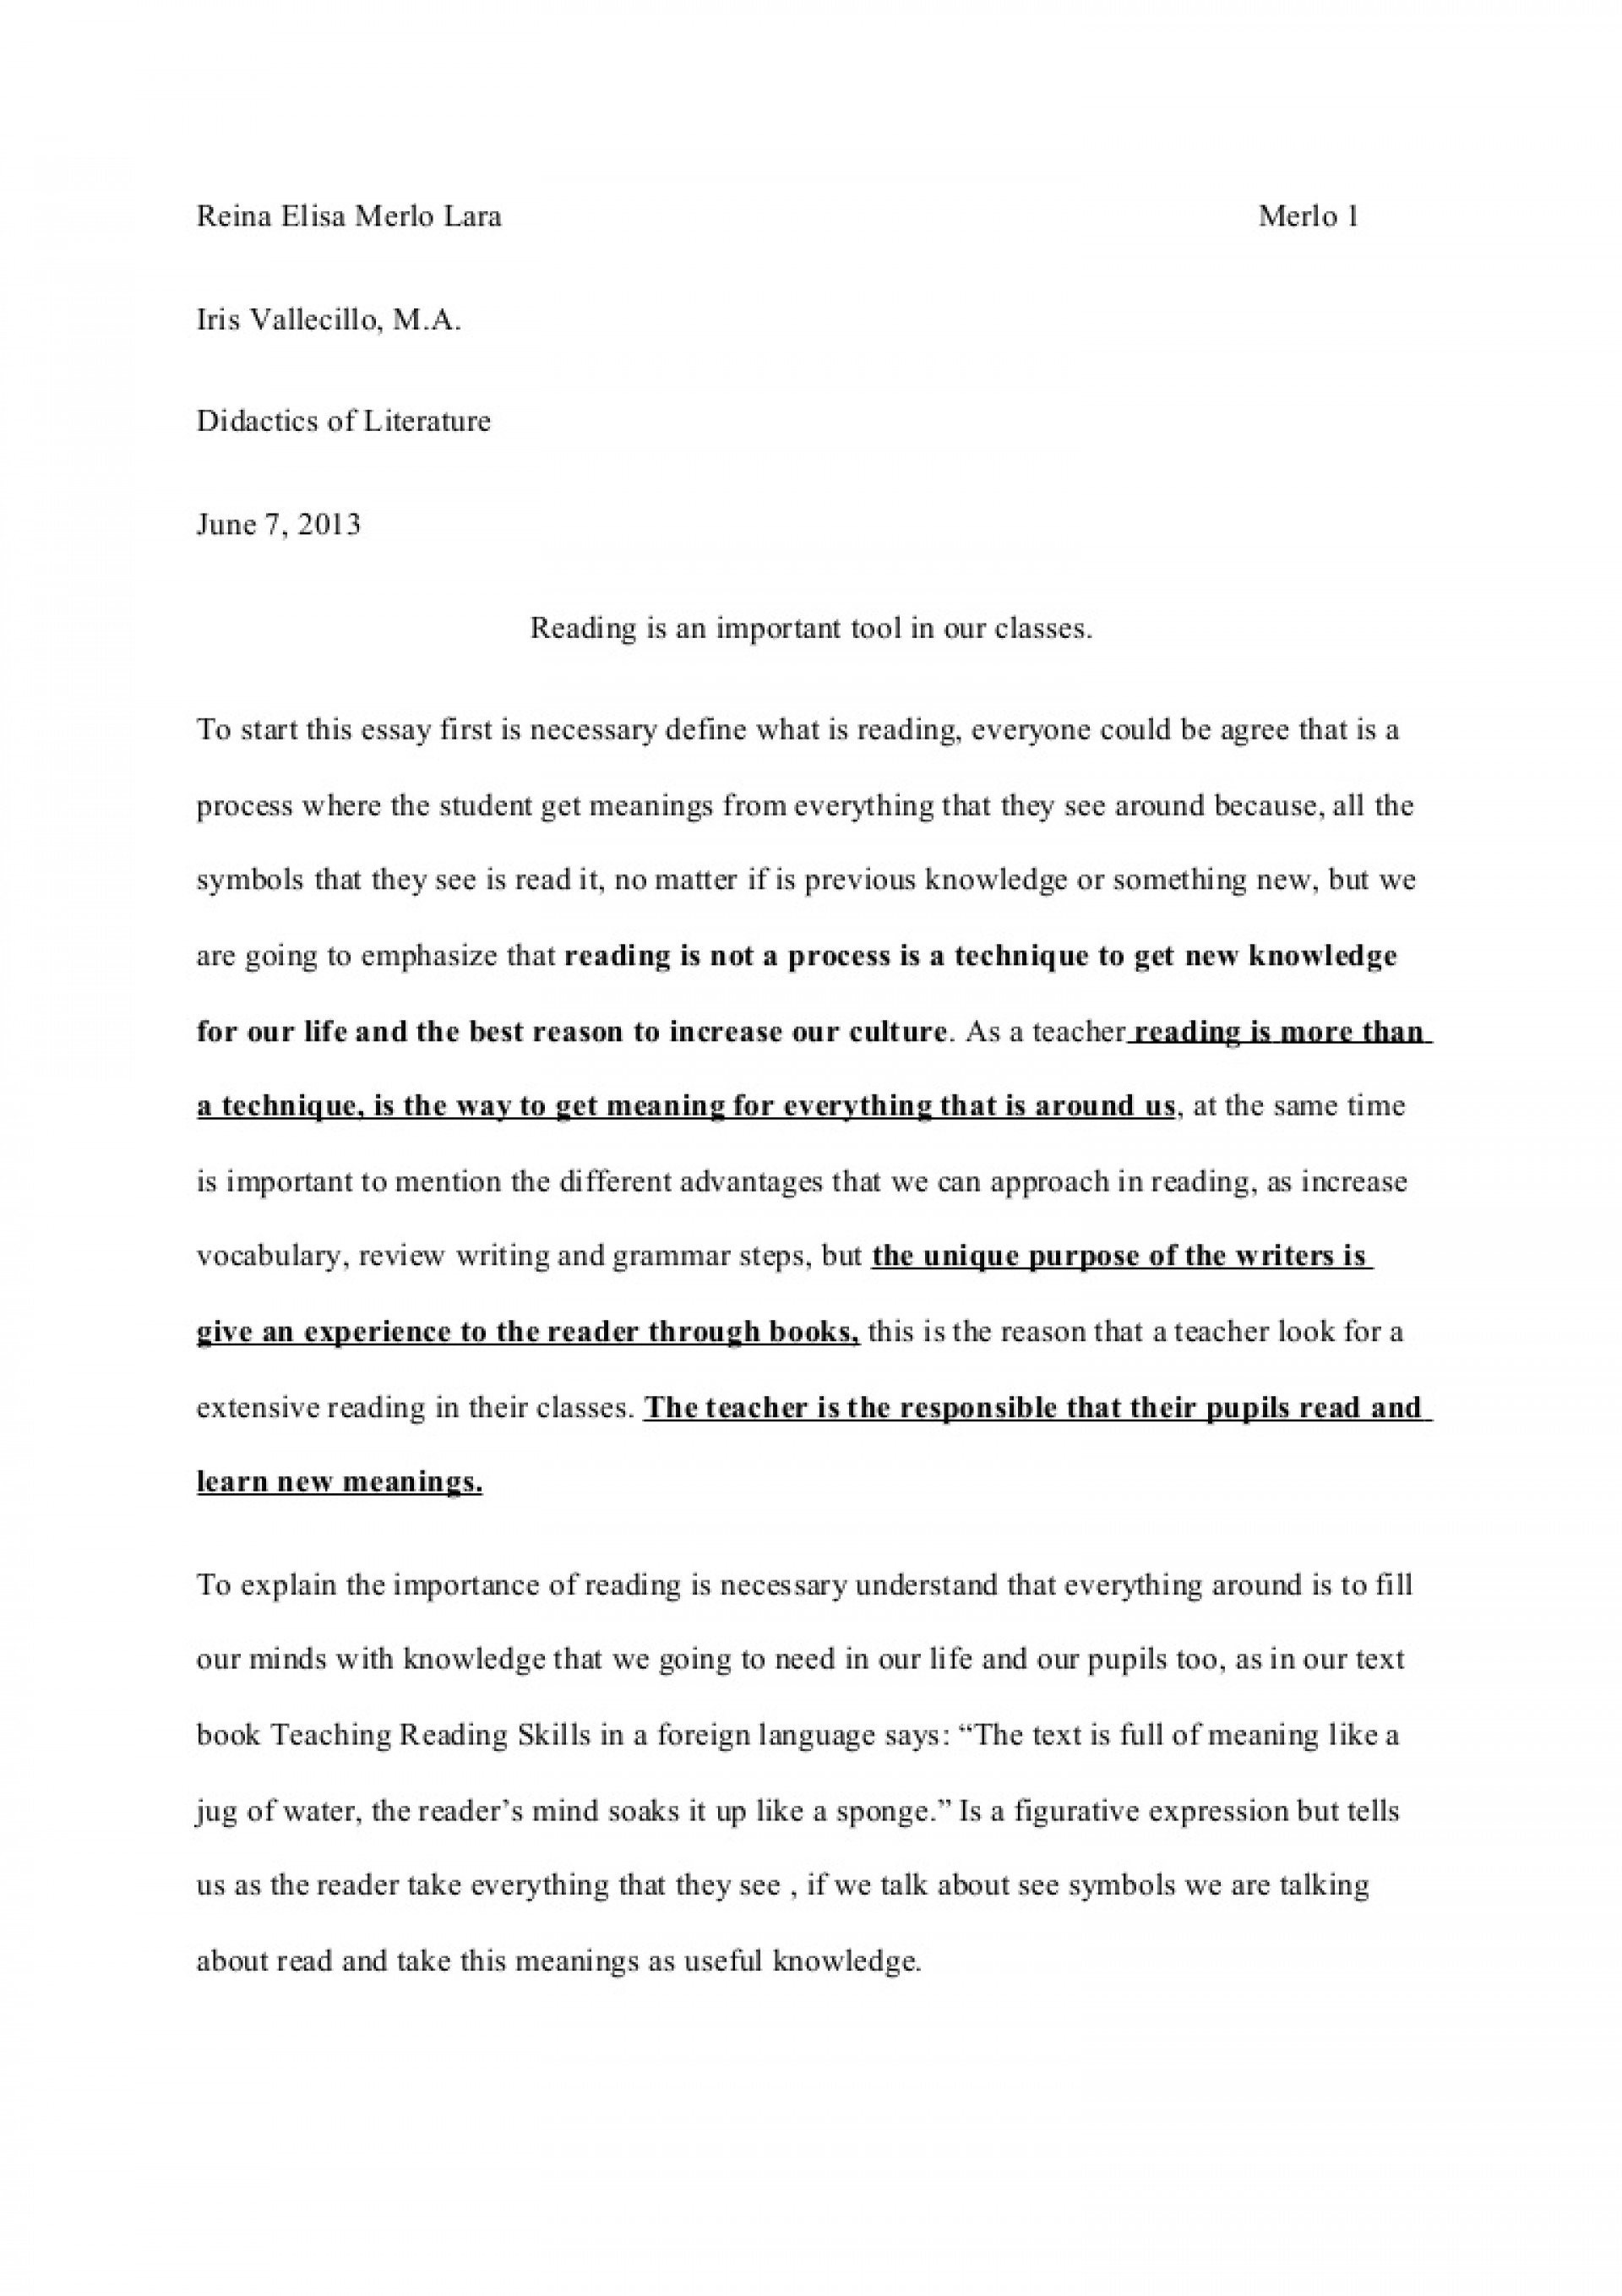 advantages of reading books essay